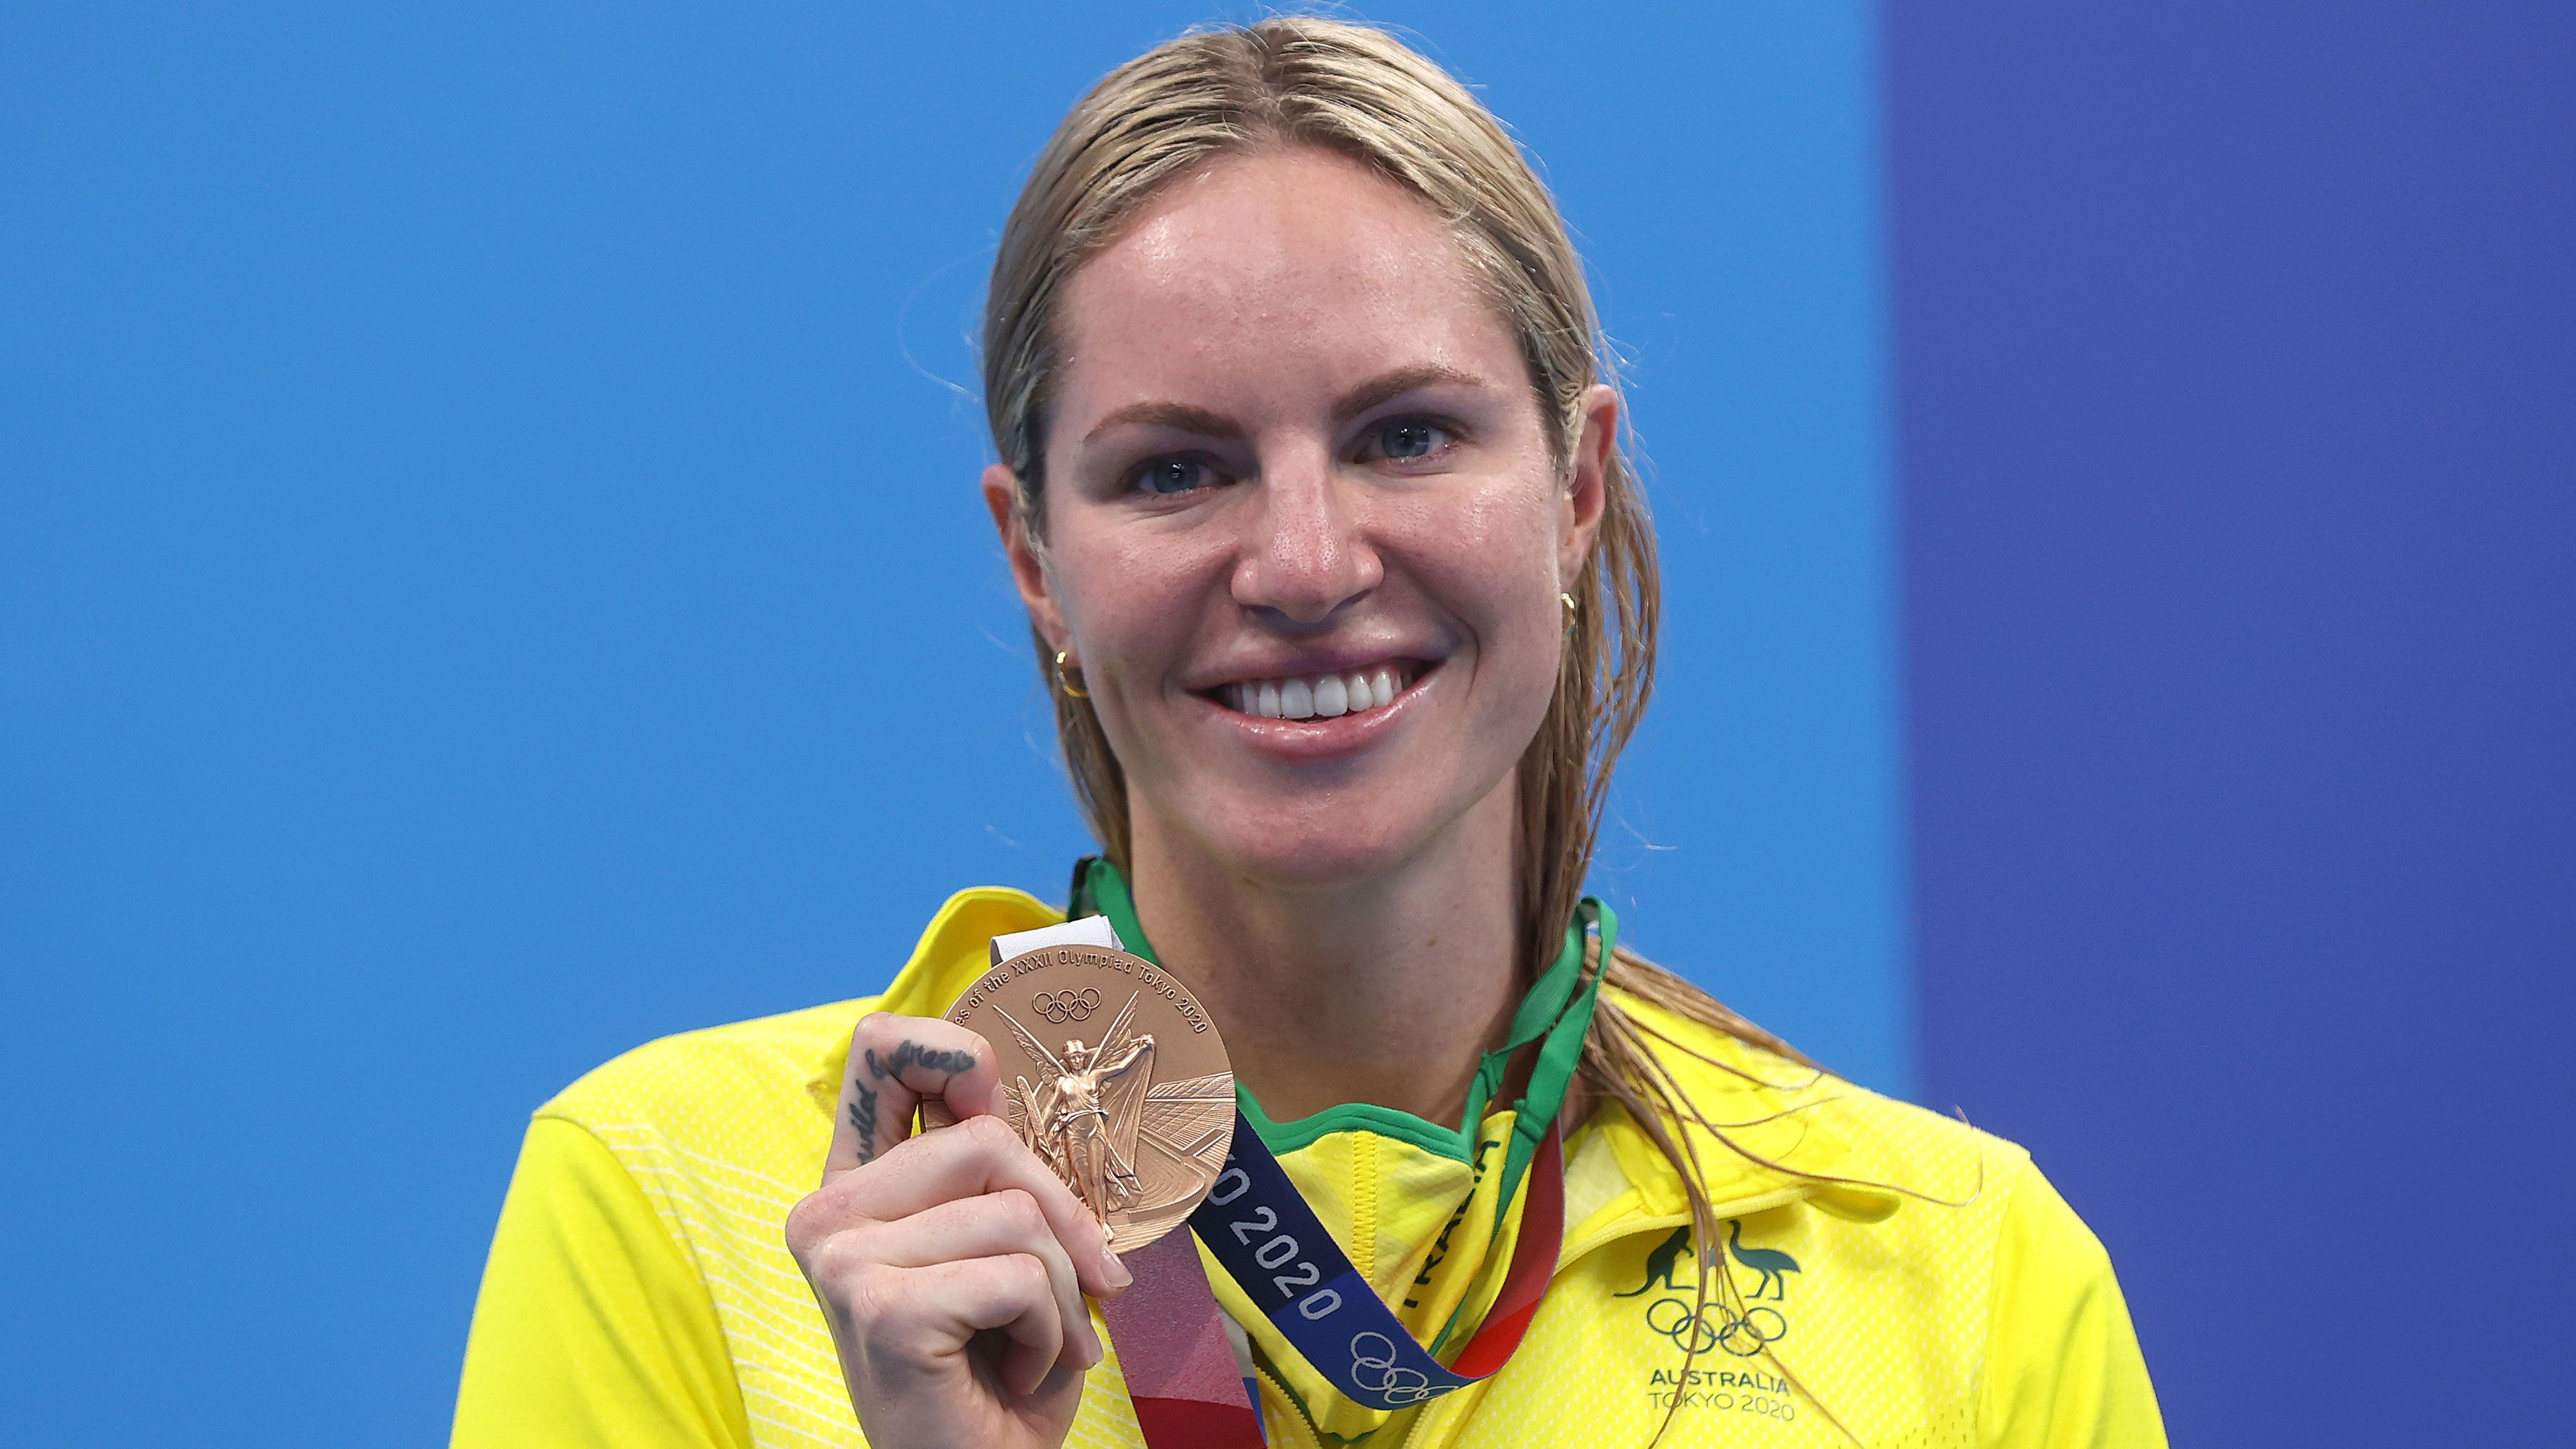 Emily Seebohm beams as she shows off her bronze medal.